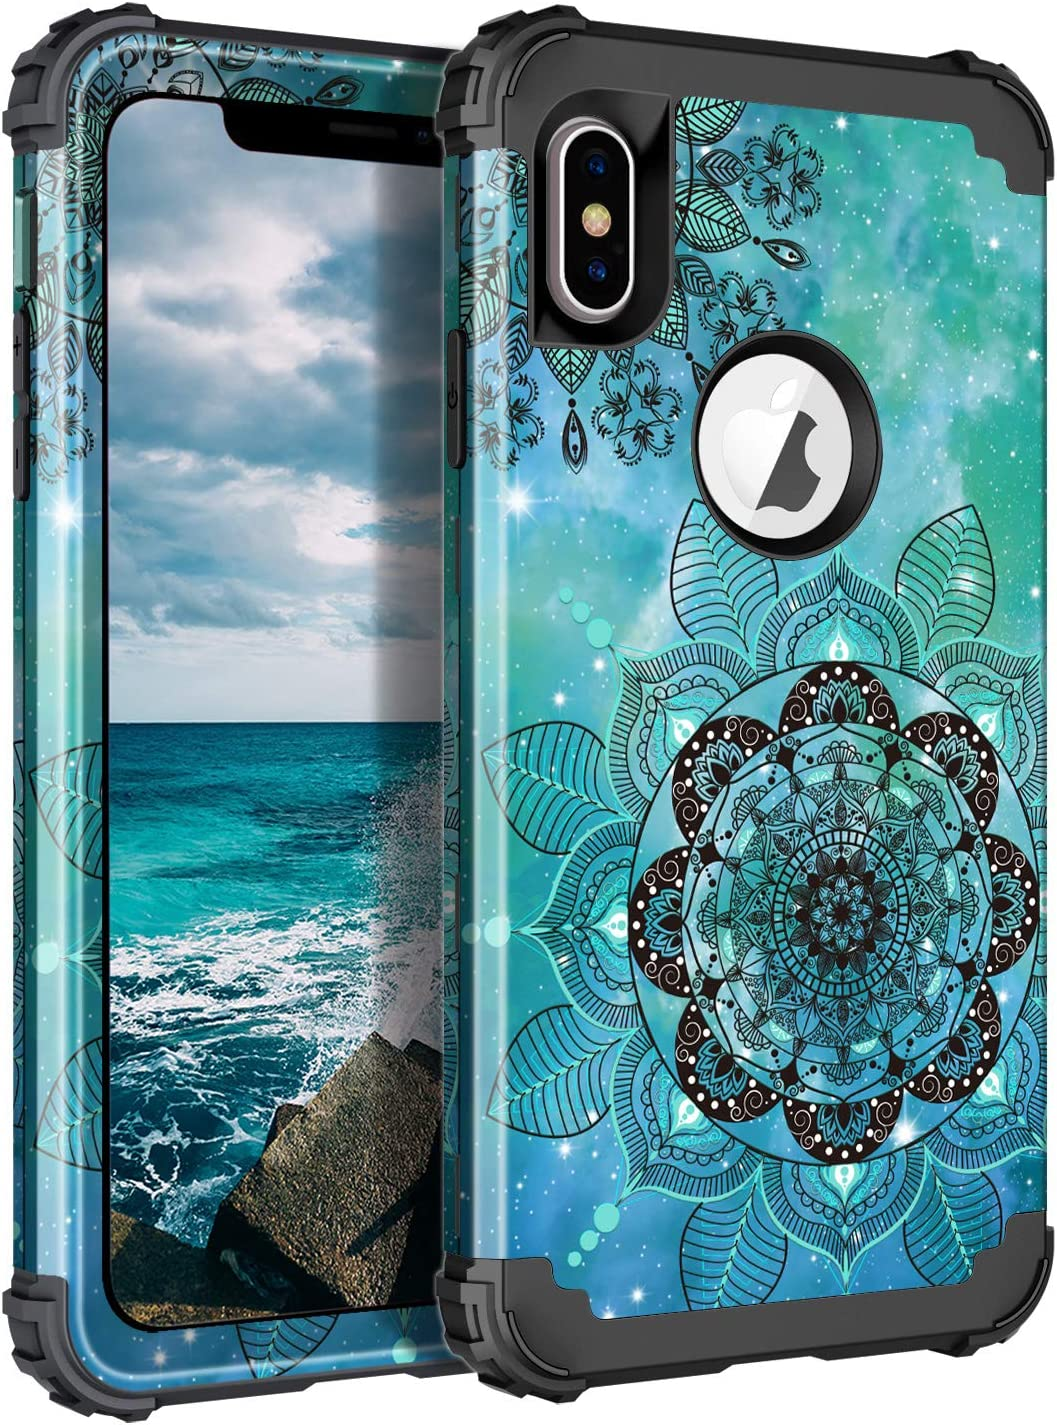 LONTECT Compatible iPhone Xs Max Case Floral 3 in 1 Heavy Duty Hybrid Sturdy High Impact Shockproof Protective Cover Case for Apple iPhone Xs Max 6.5 Display, Mandala in Galaxy/Black